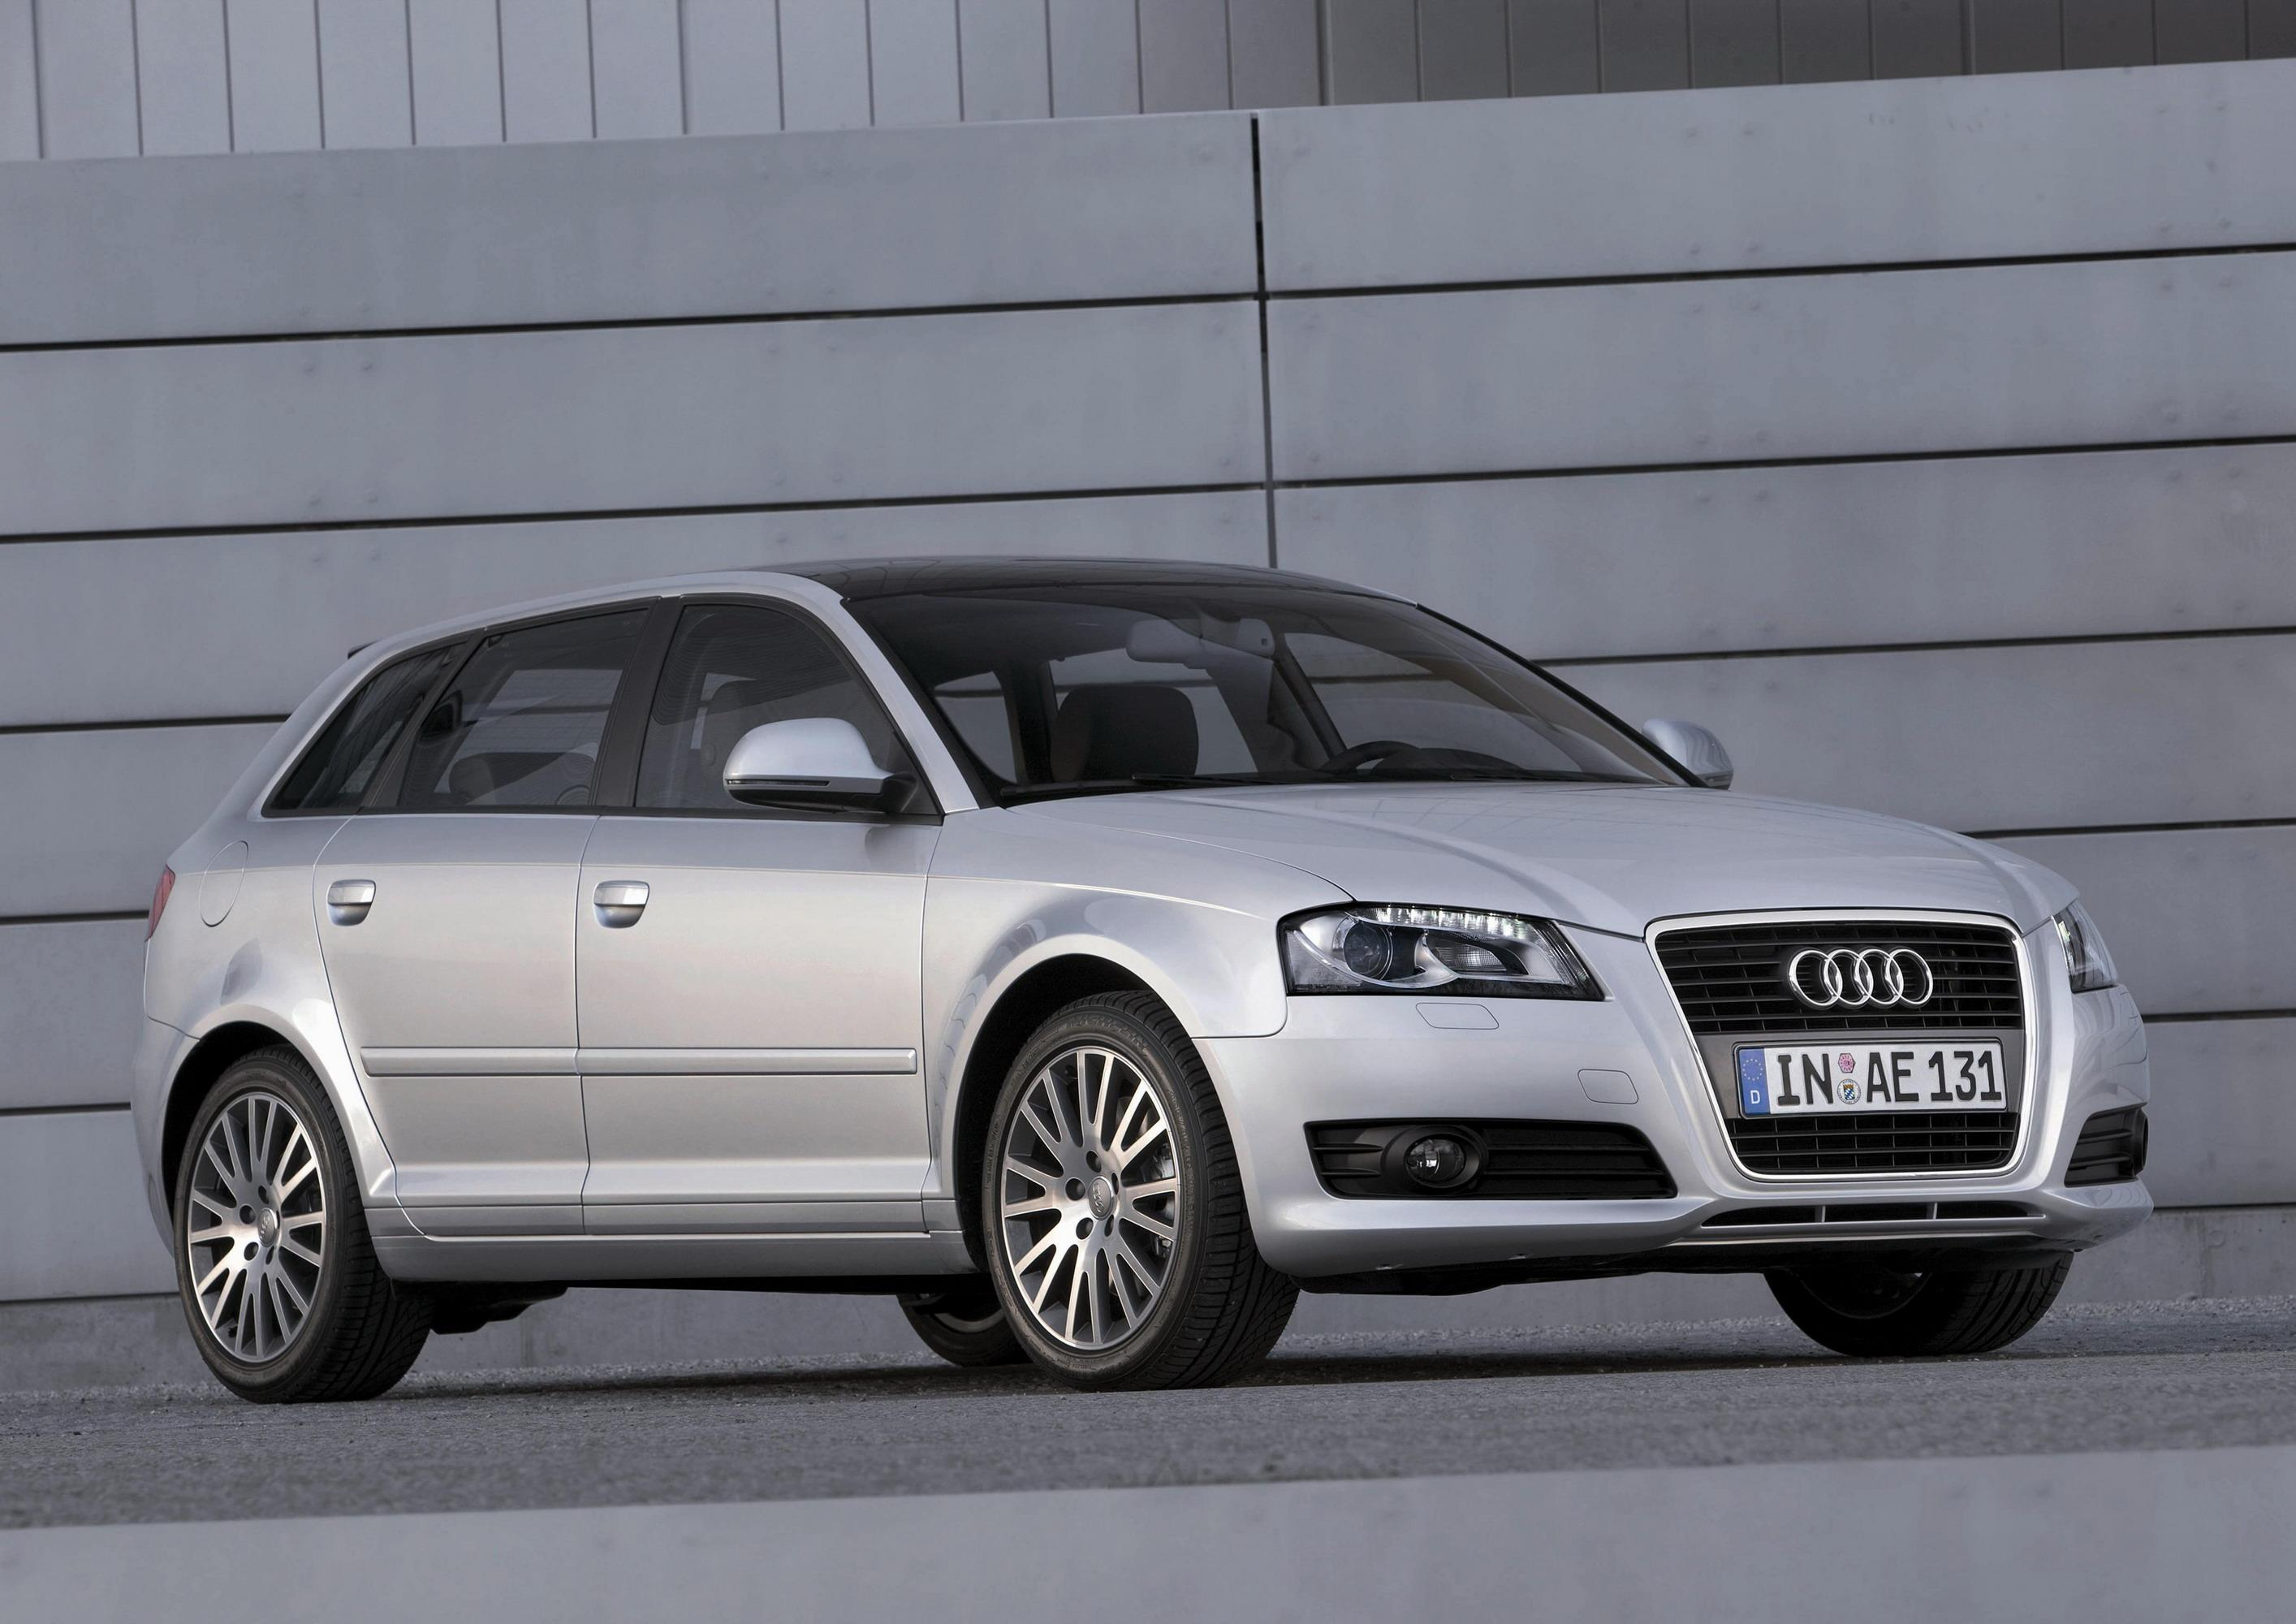 2009 audi a3 us spec version top speed. Black Bedroom Furniture Sets. Home Design Ideas